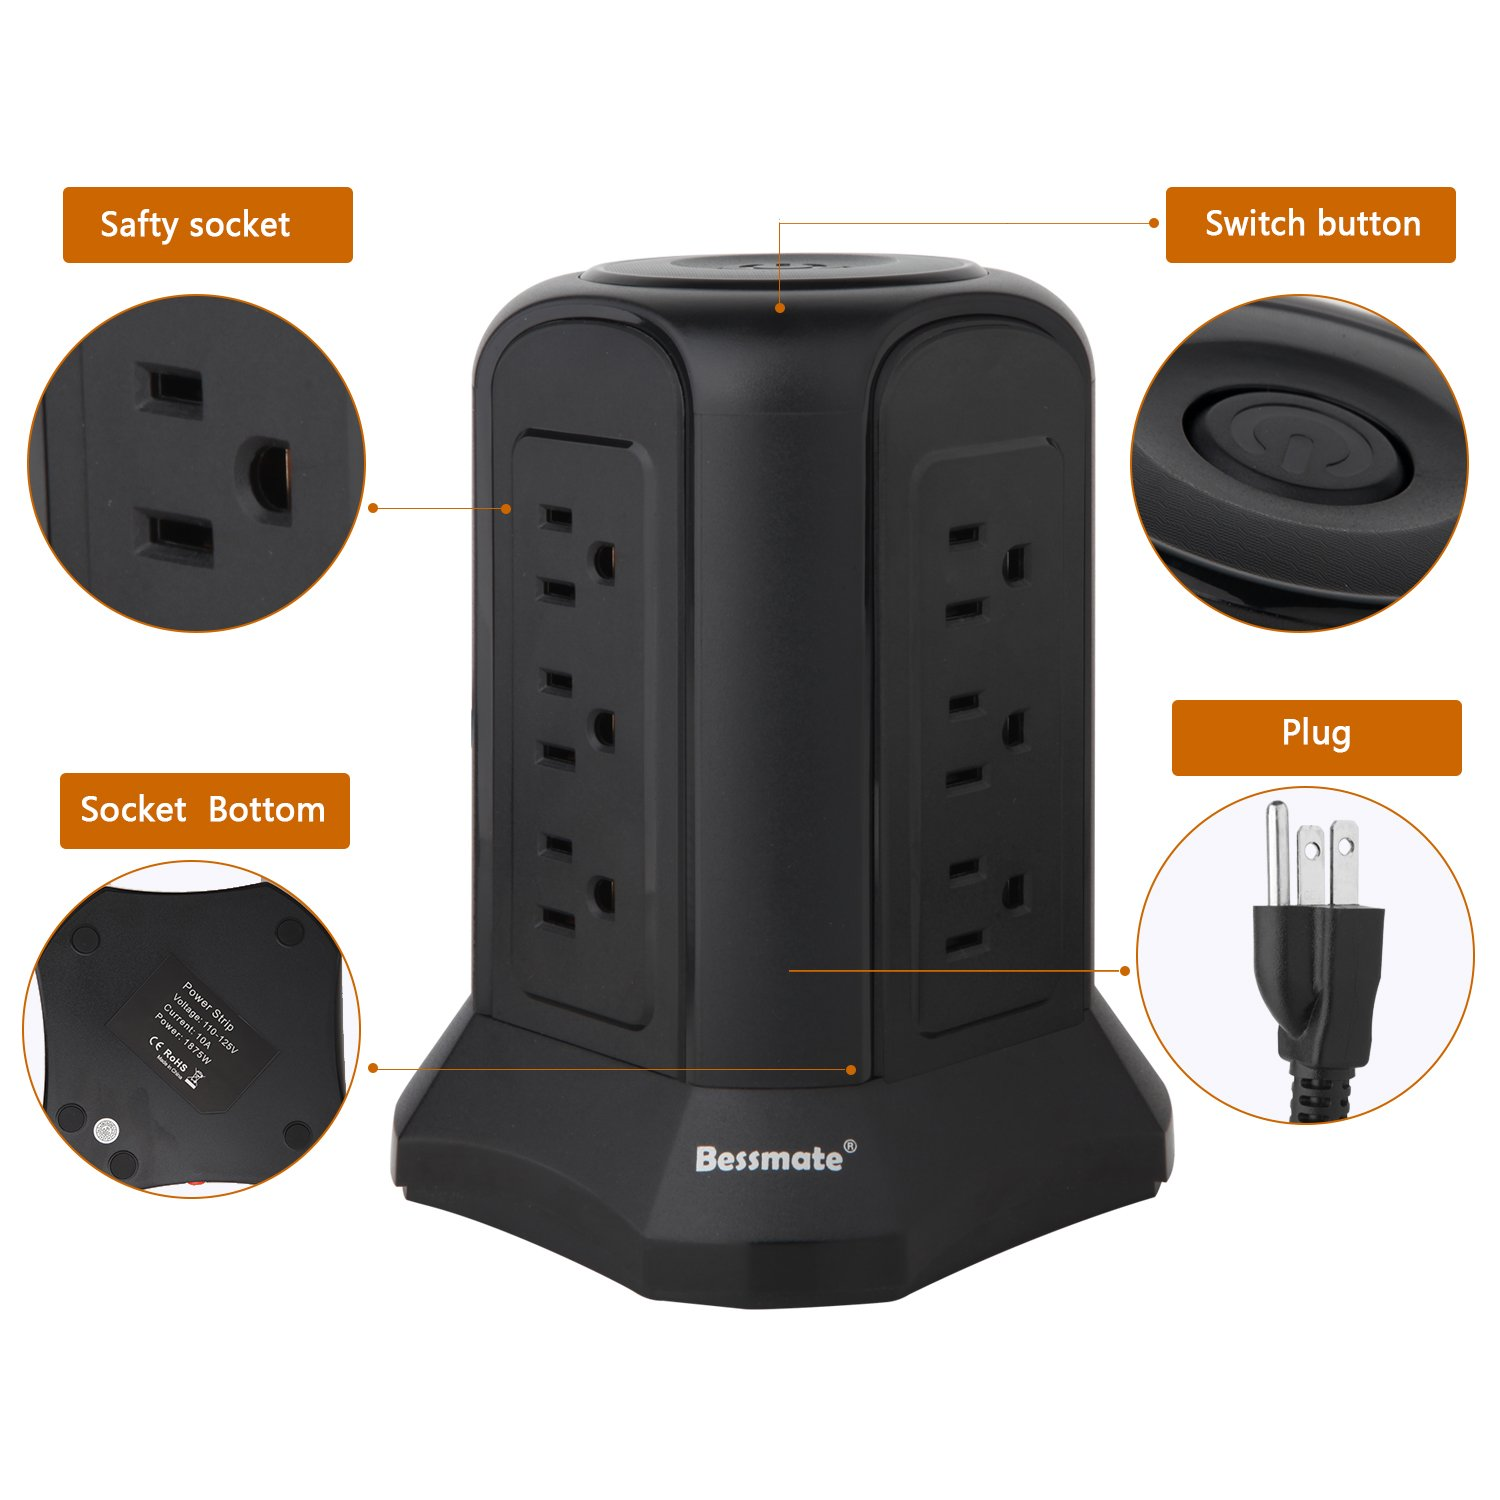 Bessmate Power Strip 12 Outlet Surge Protector with 6.5-Foot Power Cord -1000 Joules (Black) by Bessmate (Image #3)